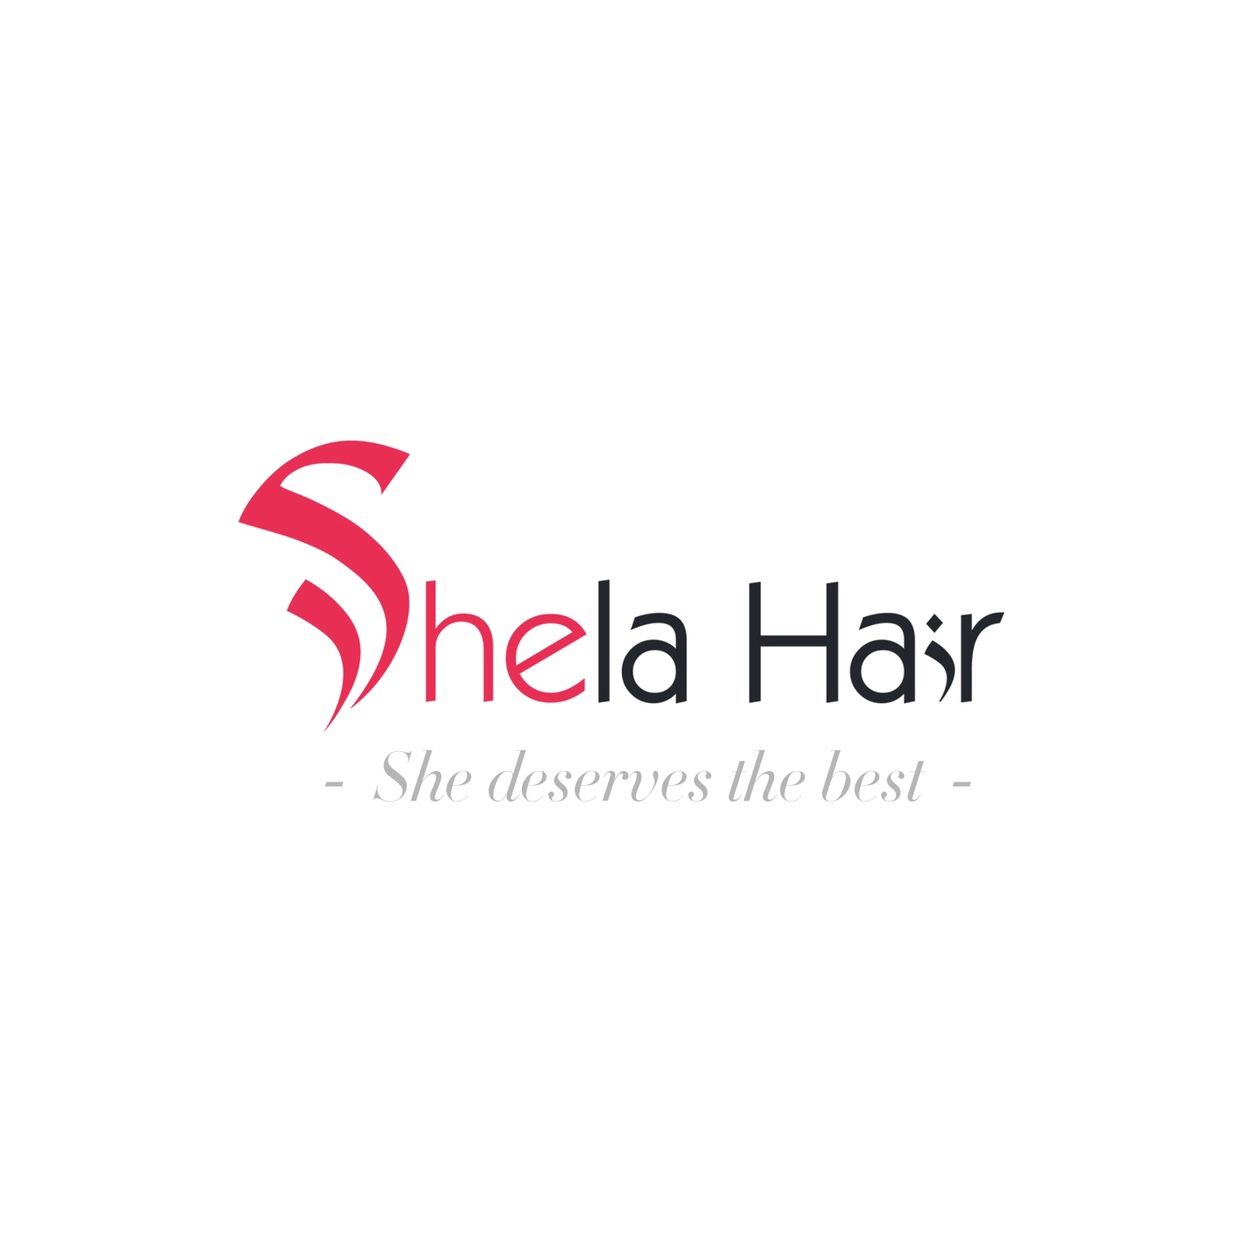 Shelahair International donates over 19000 Medical Face Masks to clients across the US